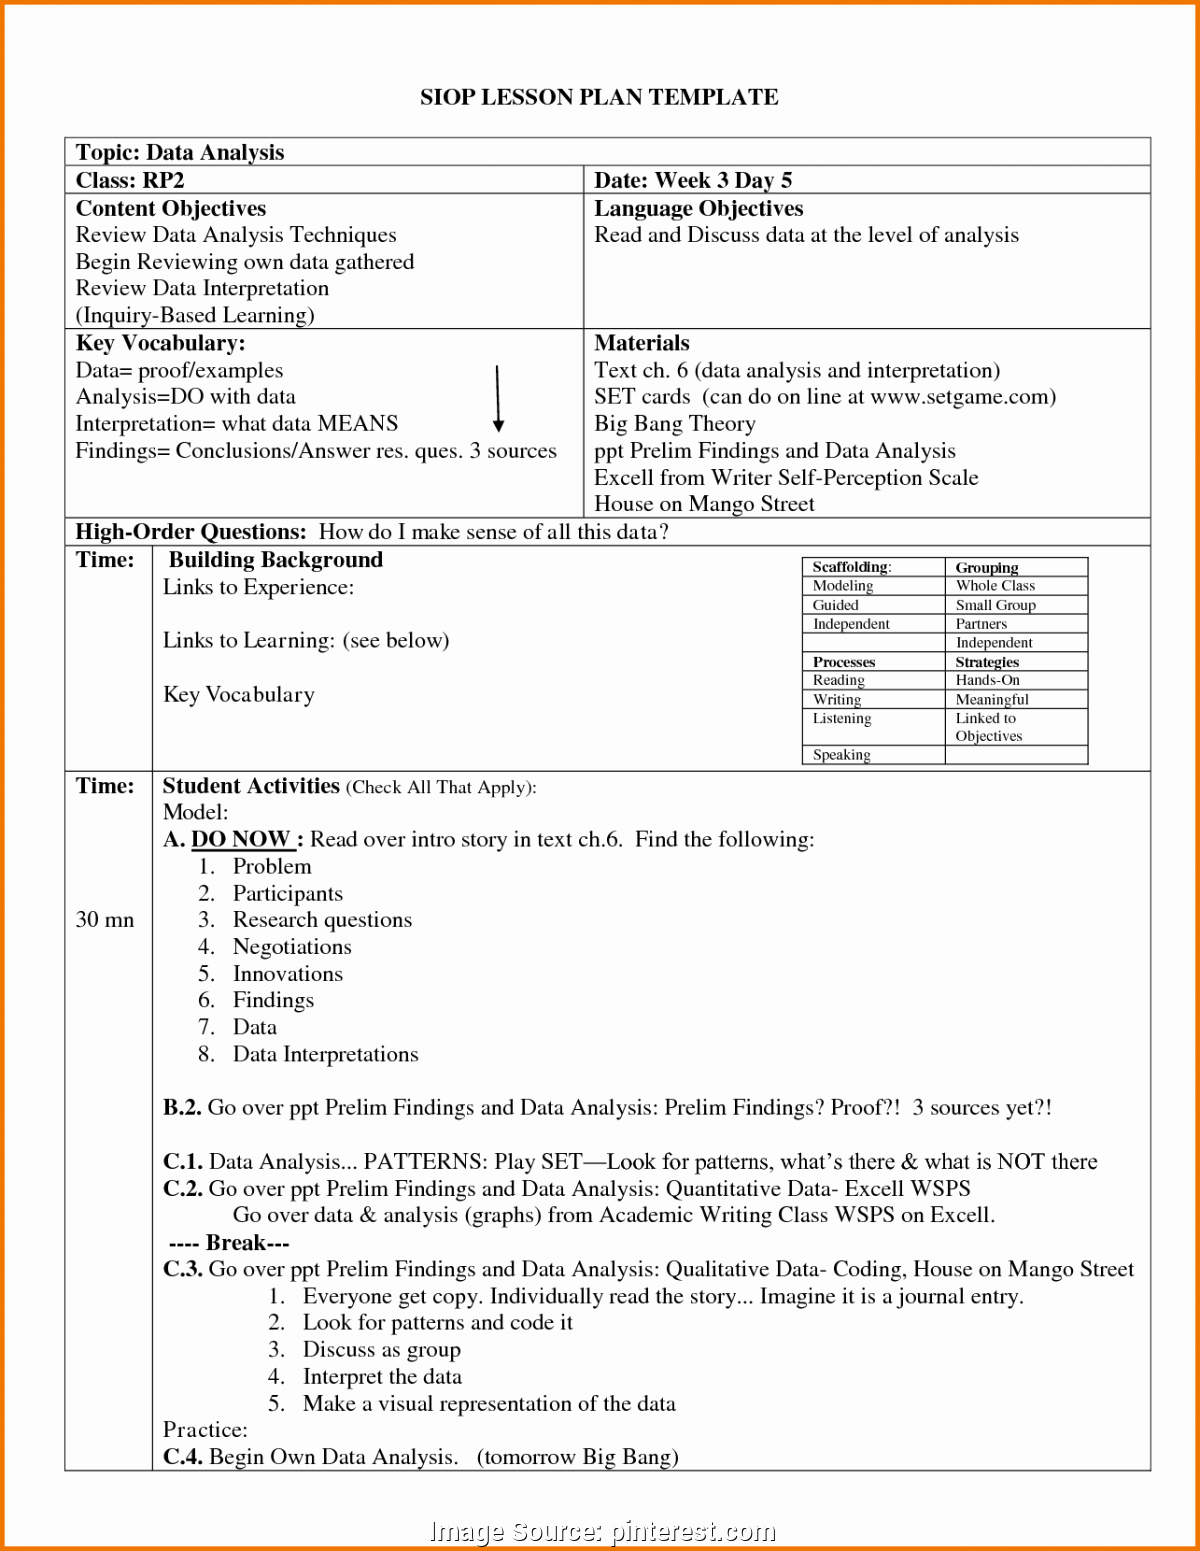 Physical Education Lesson Plans Template Fresh Plex Student Feedback Examples Quiz & Worksheet